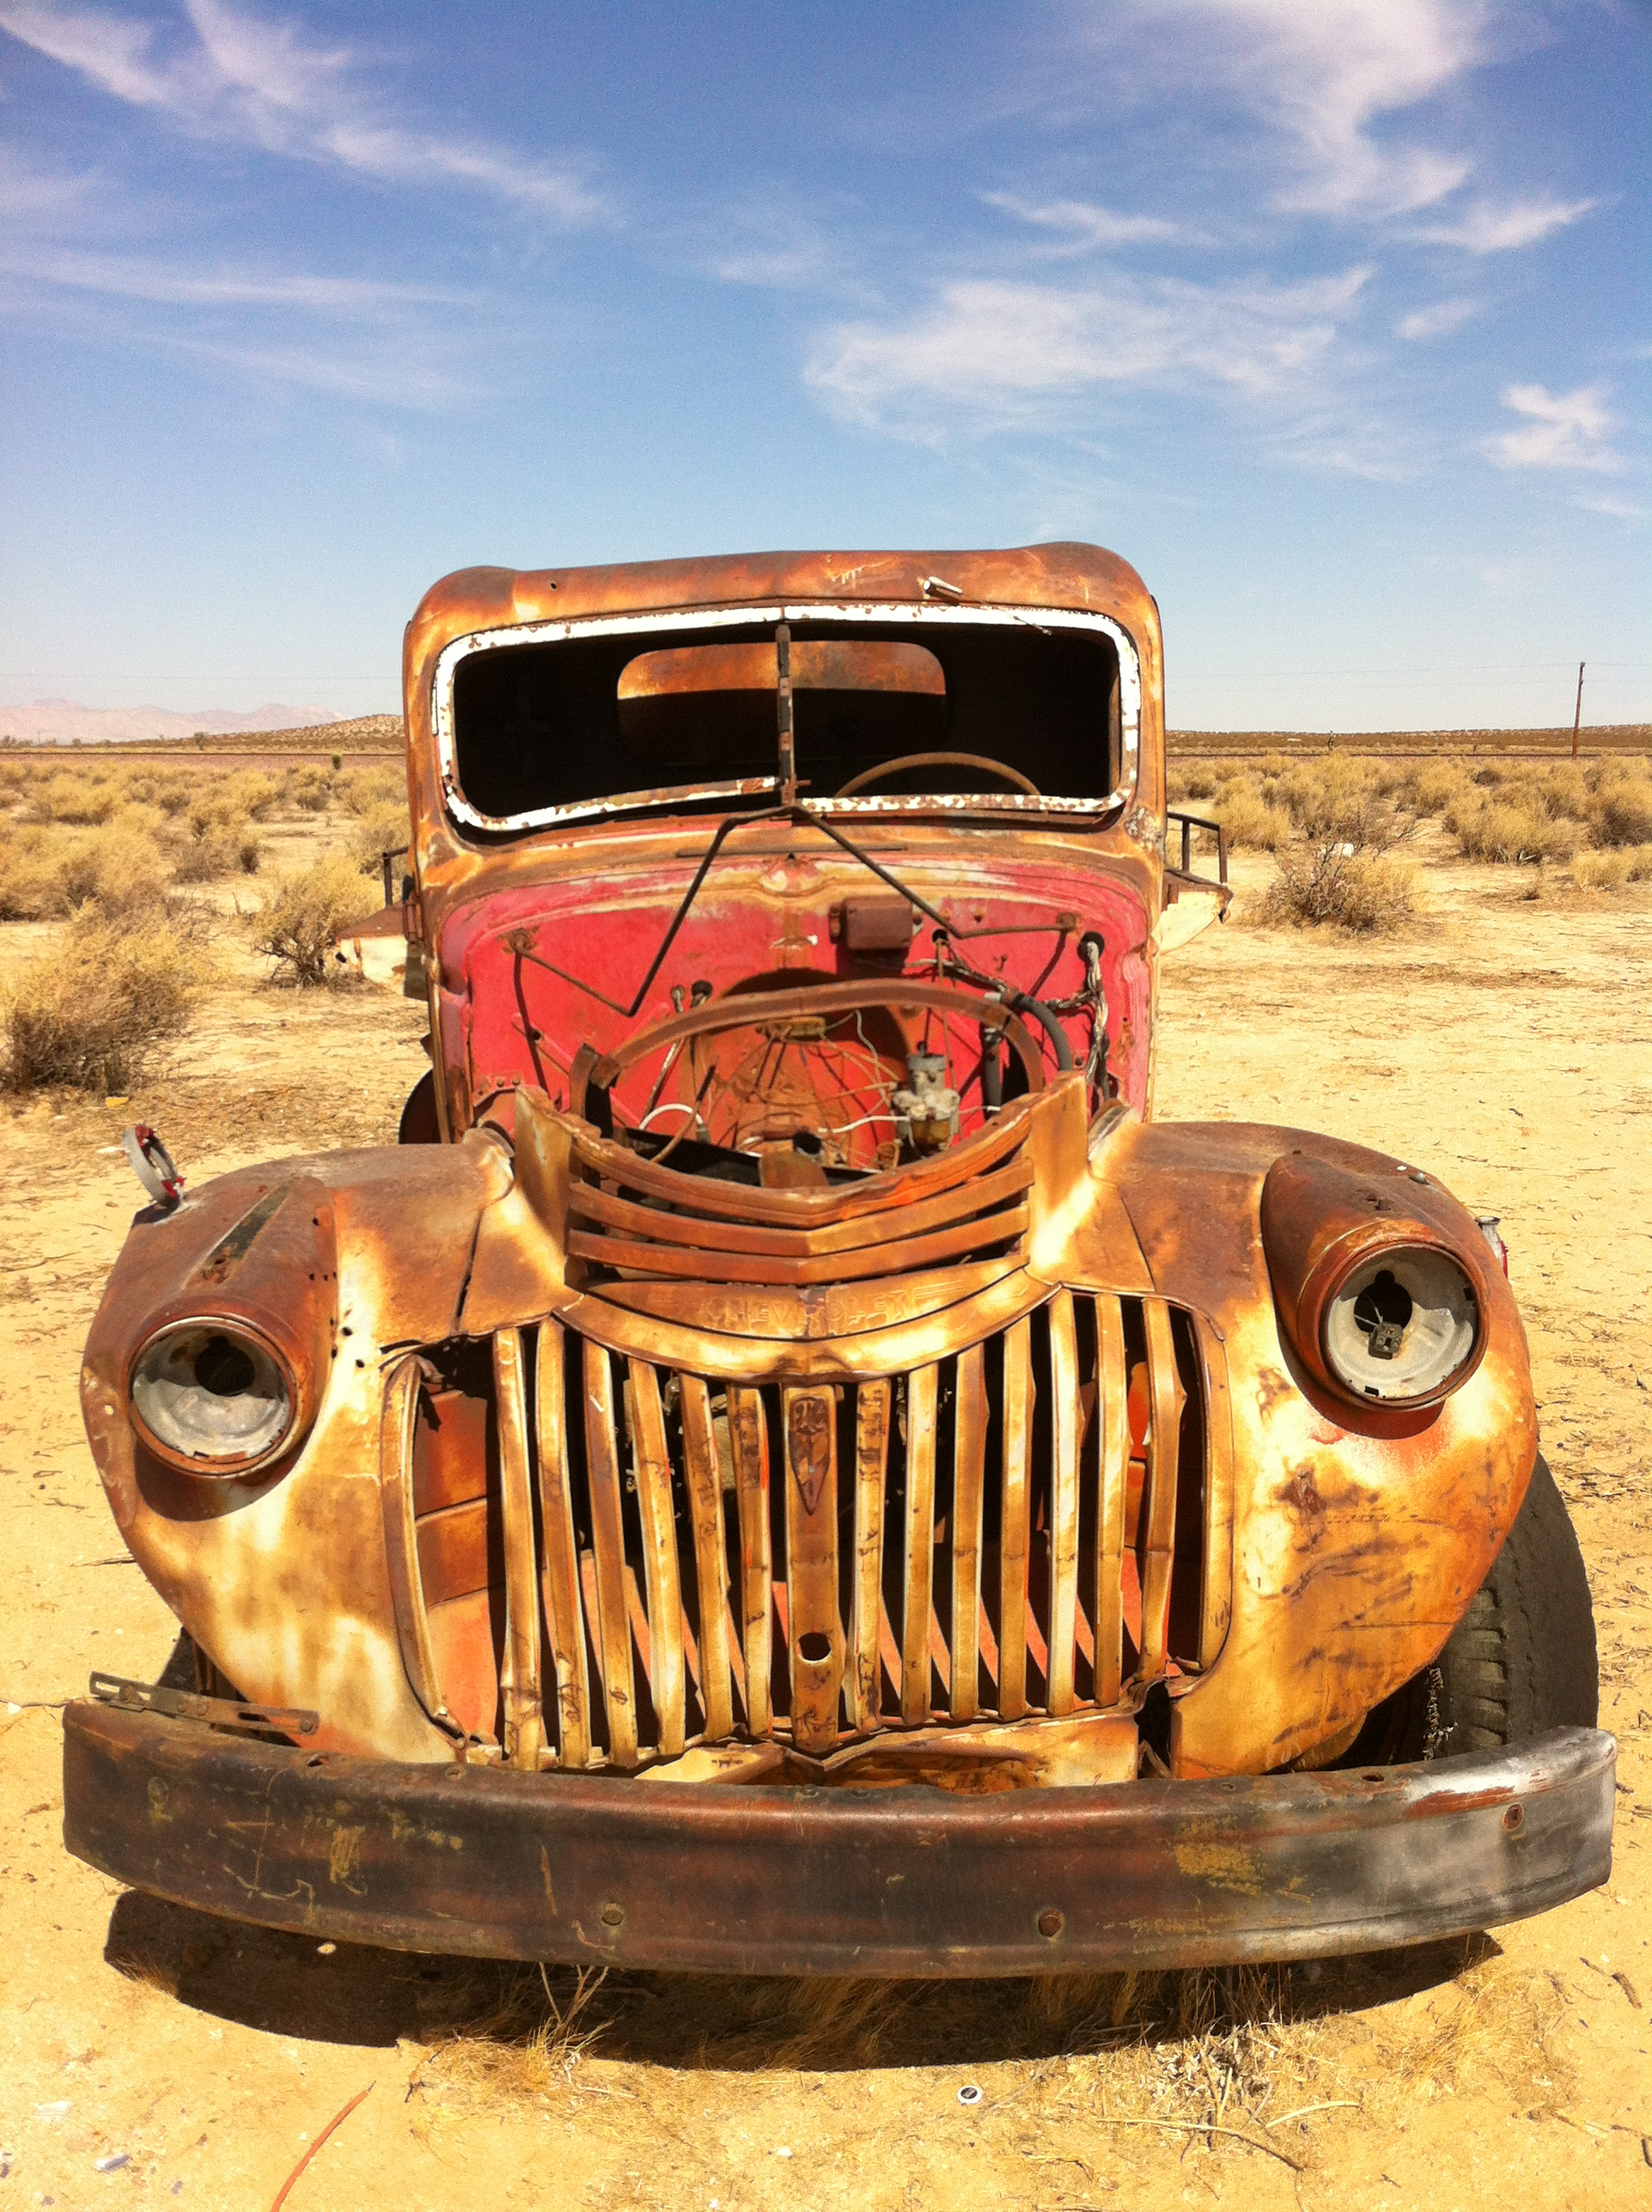 Ultimategraveyard Rusted Old Water Tanker Truck Mojave Desert Filming Photography Location Img also  together with  moreover Macos Mojave Wallpaper X Mm furthermore Px Bluecutfire. on mojave